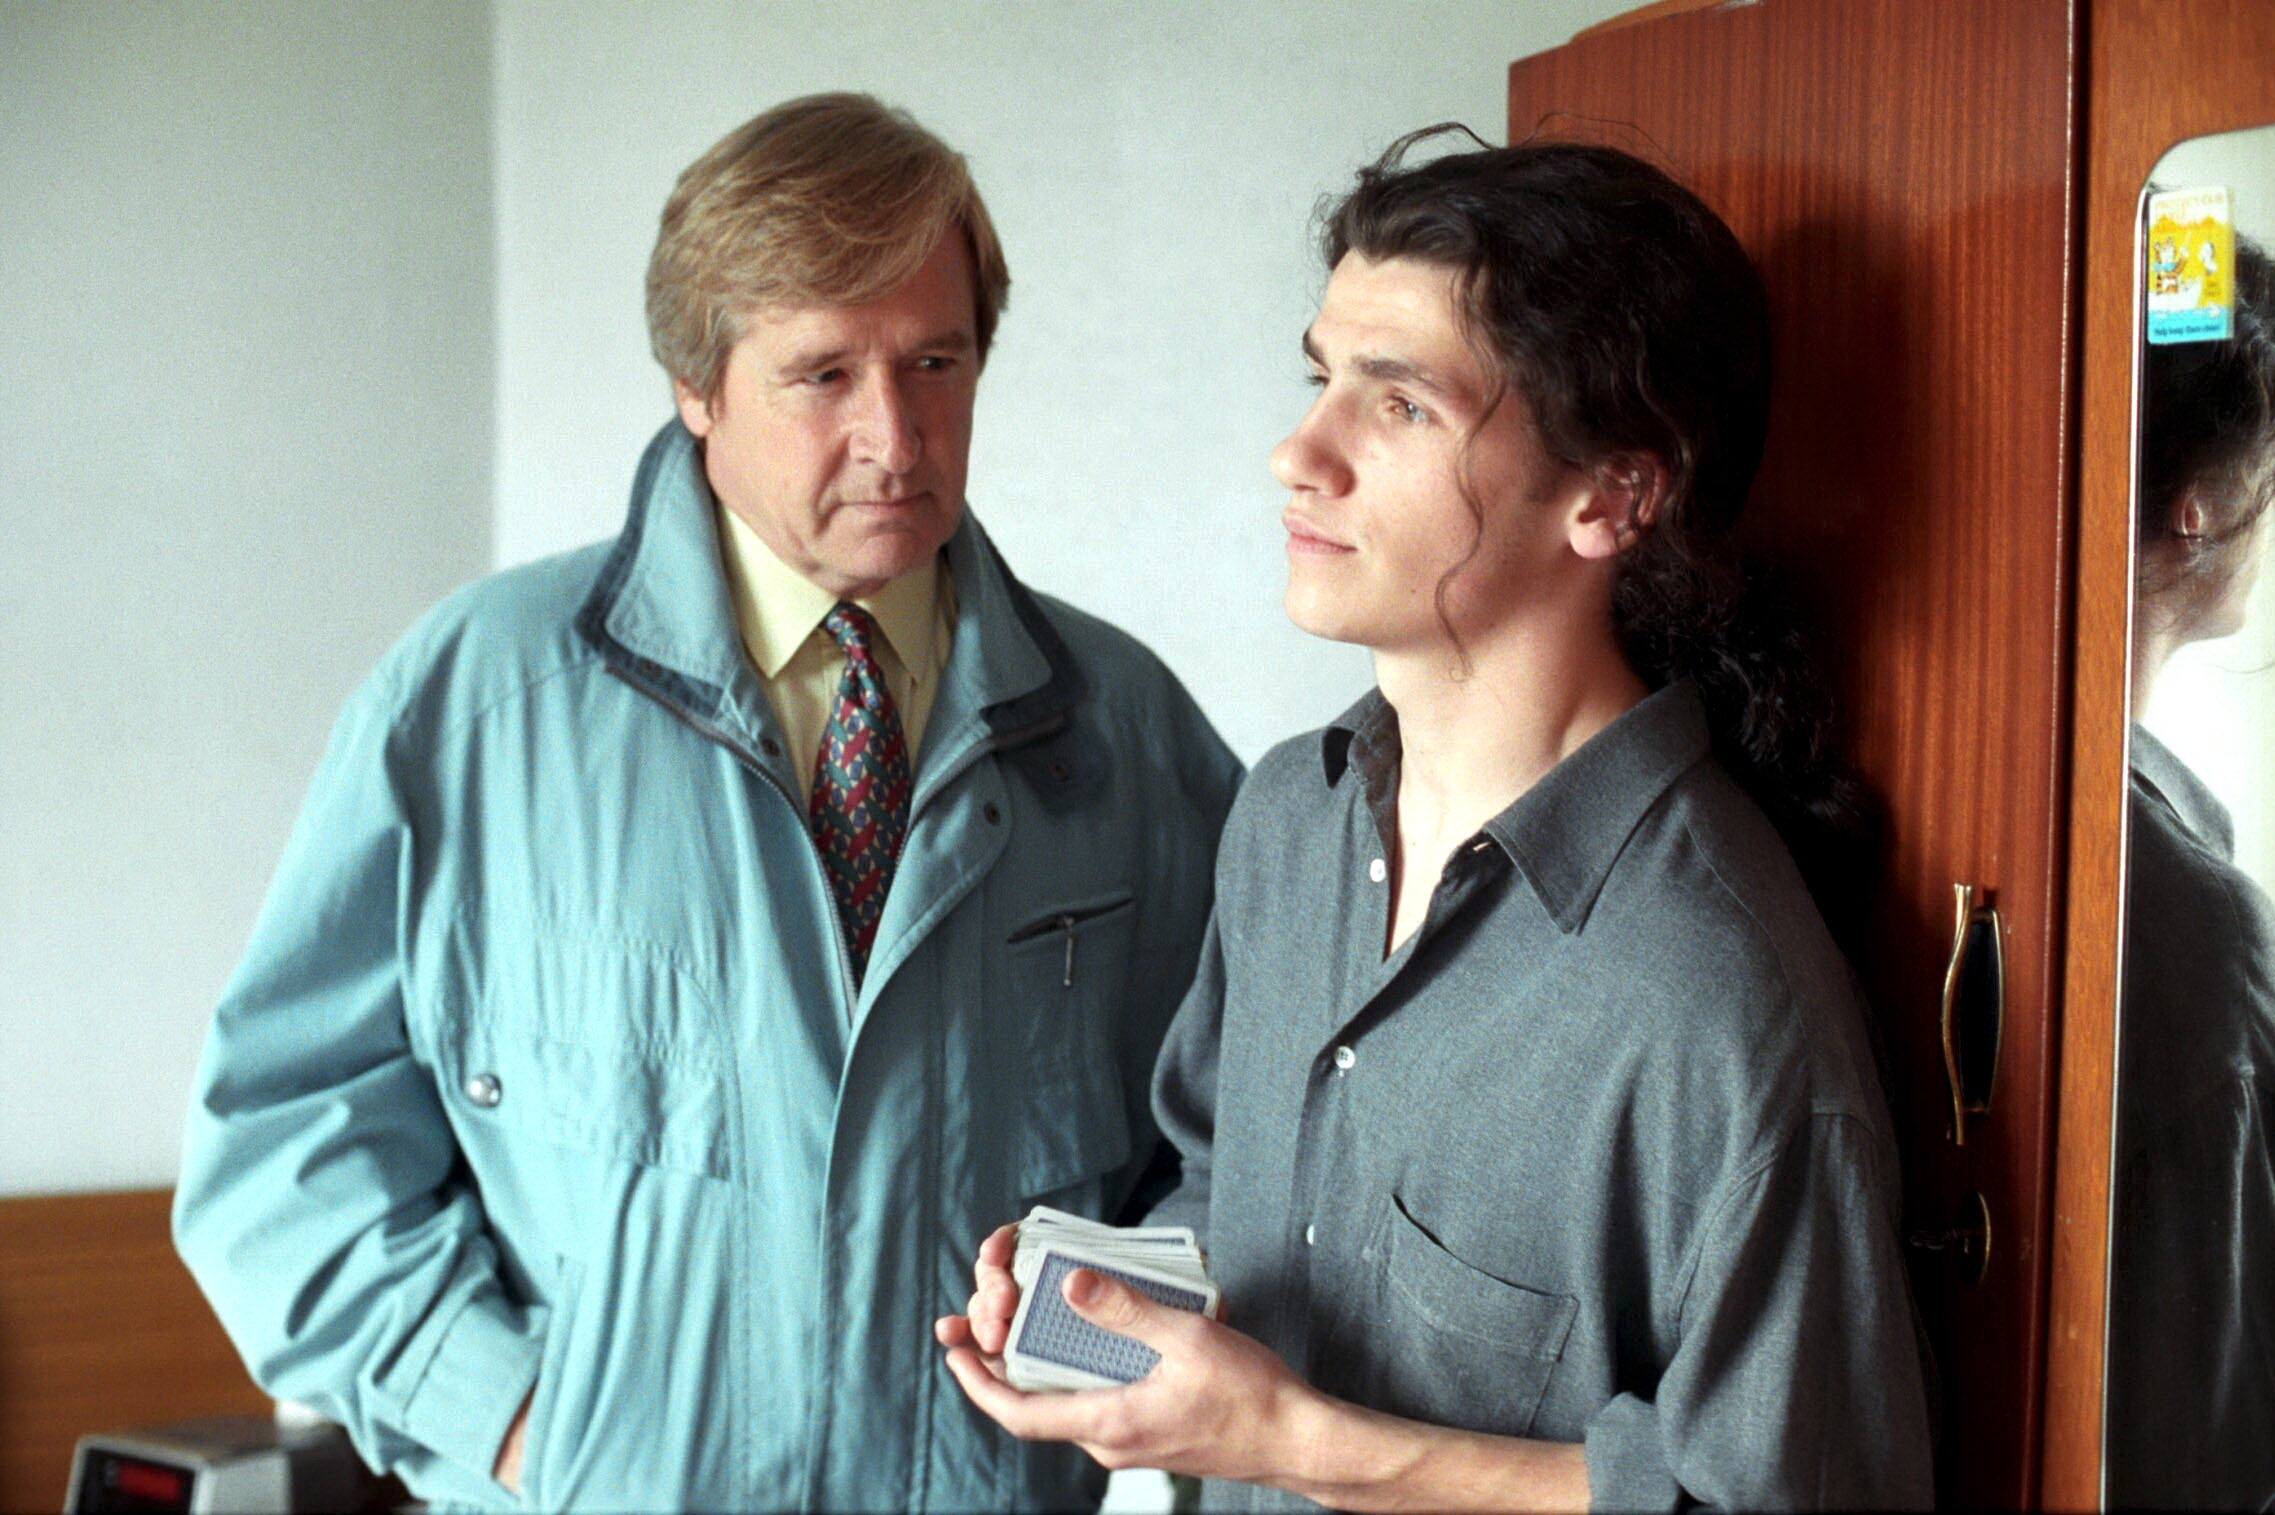 Editorial use only. Exclusive - Premium Rates Apply. Call your Account Manager for pricing. Mandatory Credit: Photo by ITV/Shutterstock (669486oz) 'Coronation Street' TV - 1993 - Ken Barlow [William Roache] calls at Tracy's flat and meets her boyfriend Craig Lee [Kieran O'Brien]. ITV ARCHIVE